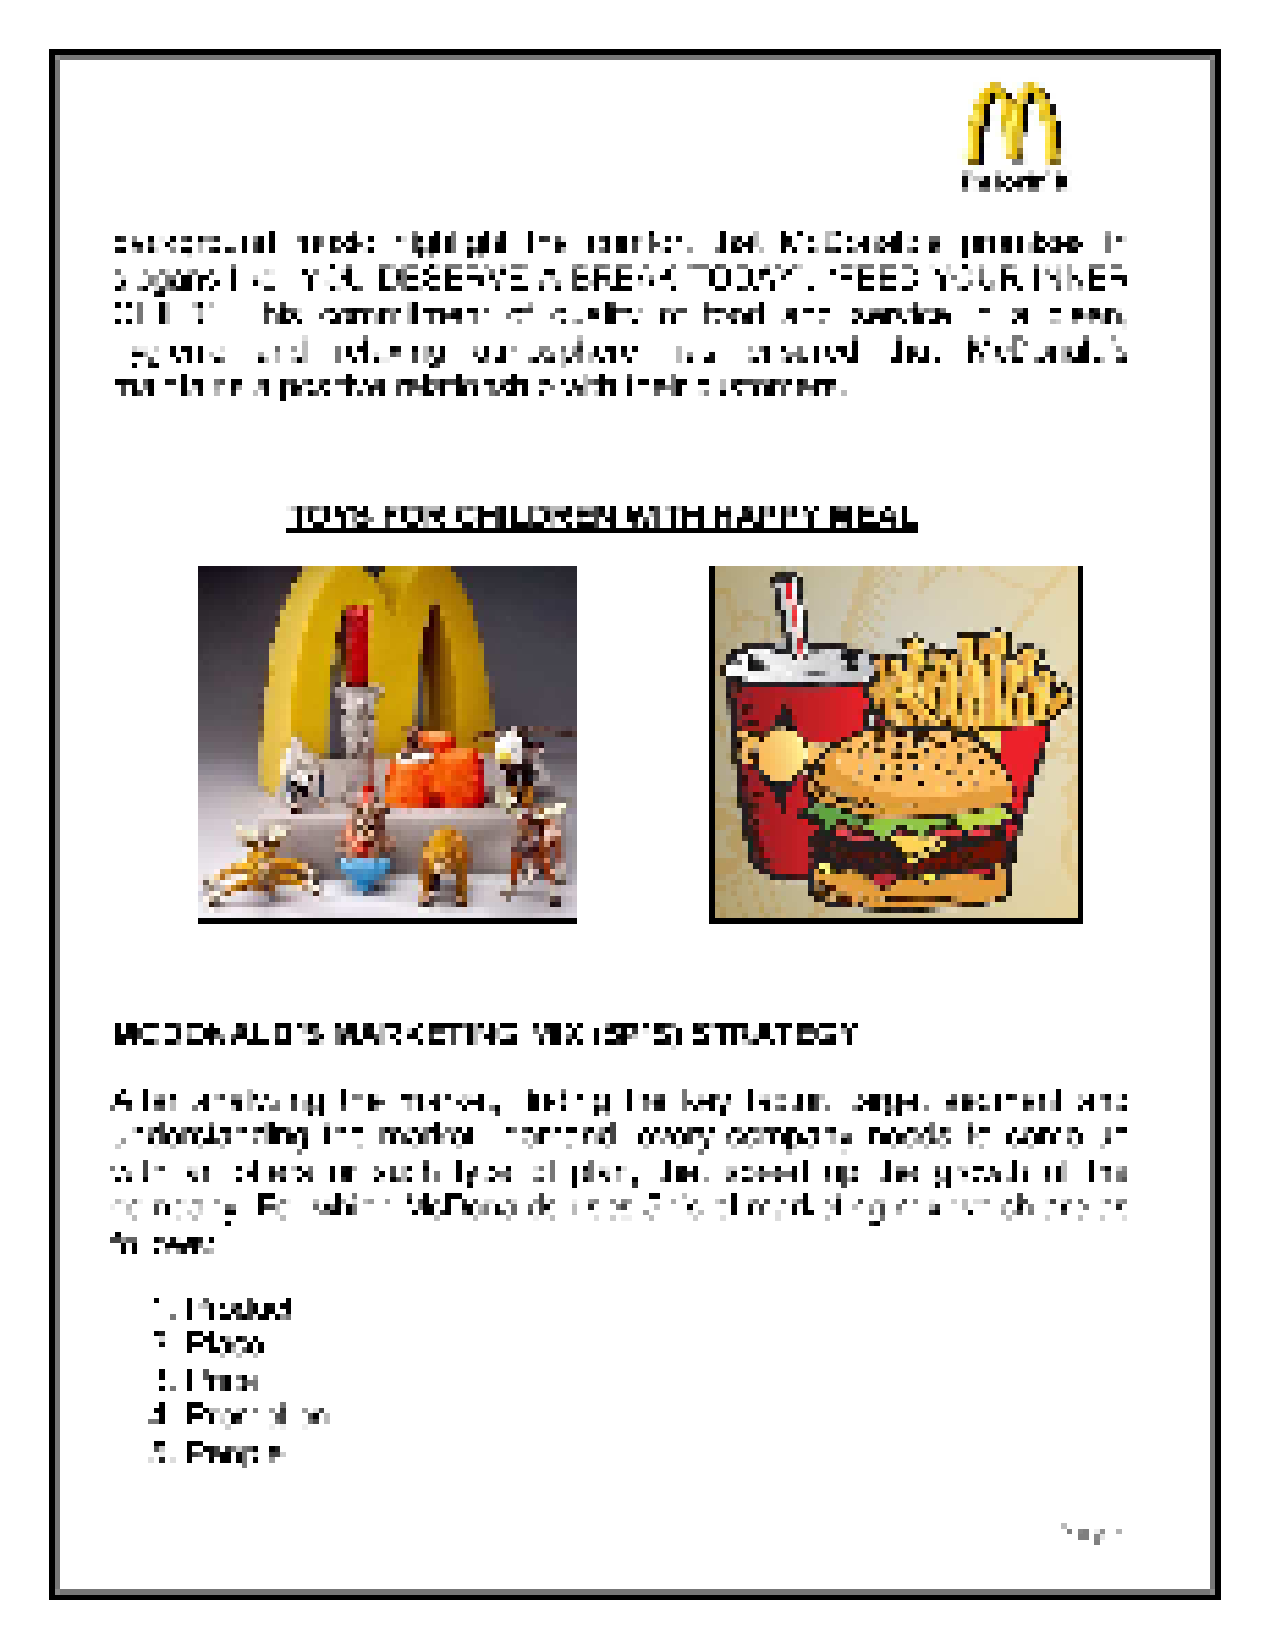 mcdonalds marketing activities The company is also improving its technology: self-service kiosks, mobile ordering and payments, and digital marketing are all in the works, the company has said.